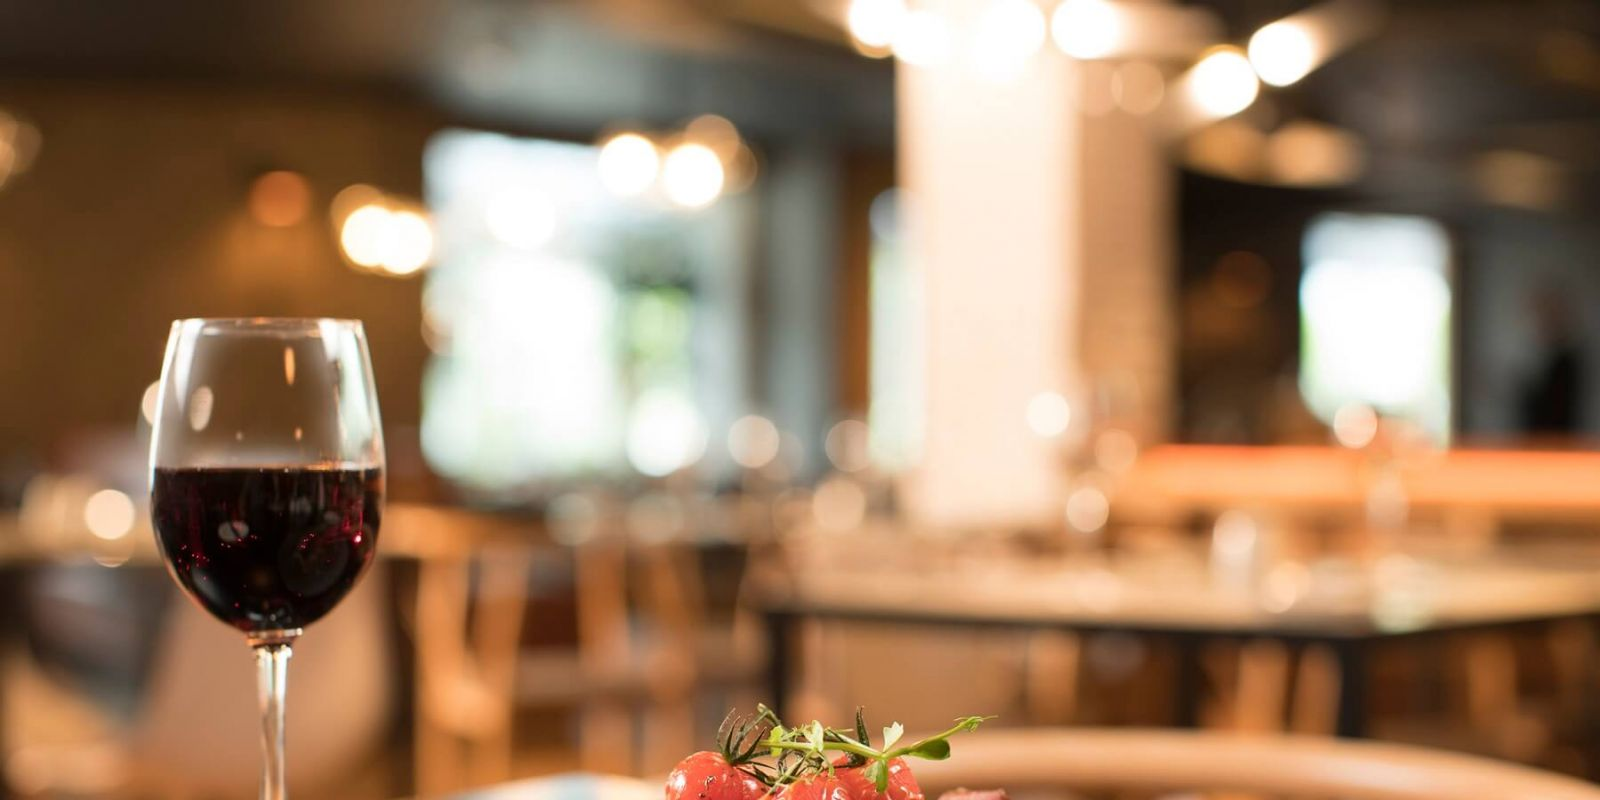 Visit Our Newly Refurbished Bar & Restaurant For Breakfast, Lunch & Dinner